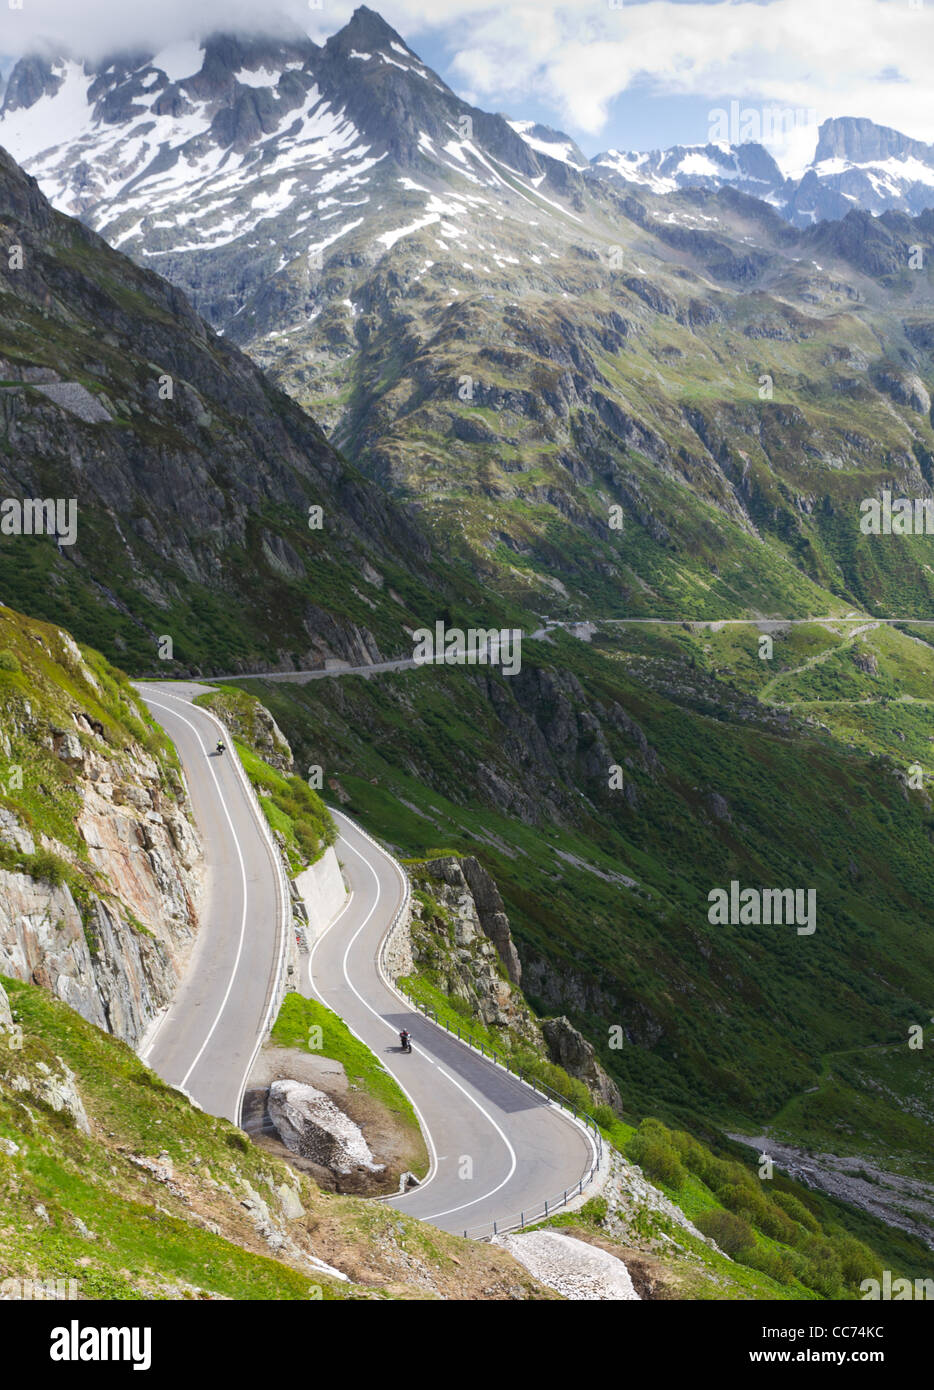 road with tight bends at Susten pass in high alpine Mountains, Switzerland - Stock Image